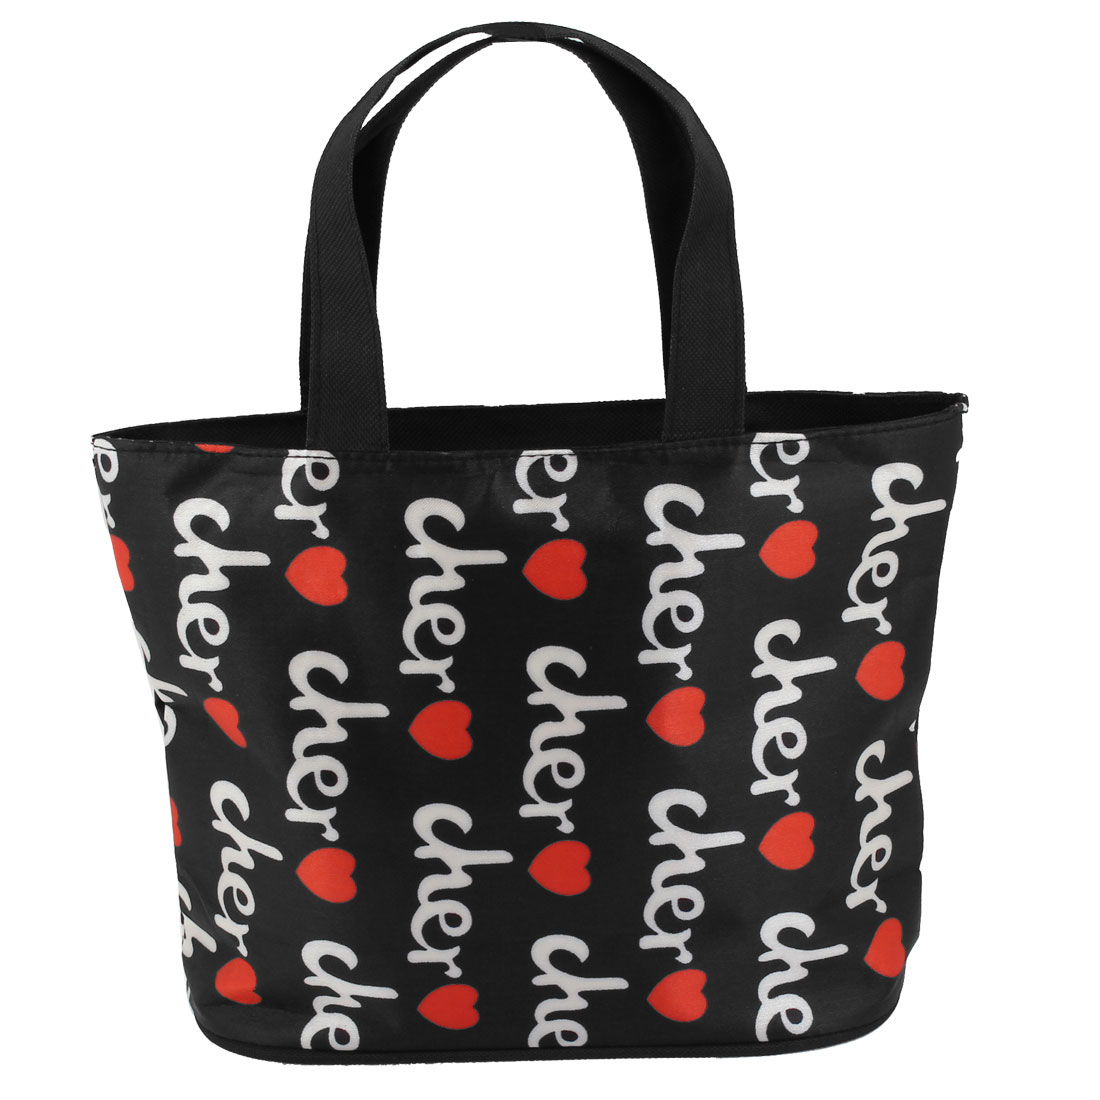 White Letters Red Heart Pattern Zip Up Foldable Recycle Shopping Handbag Tote